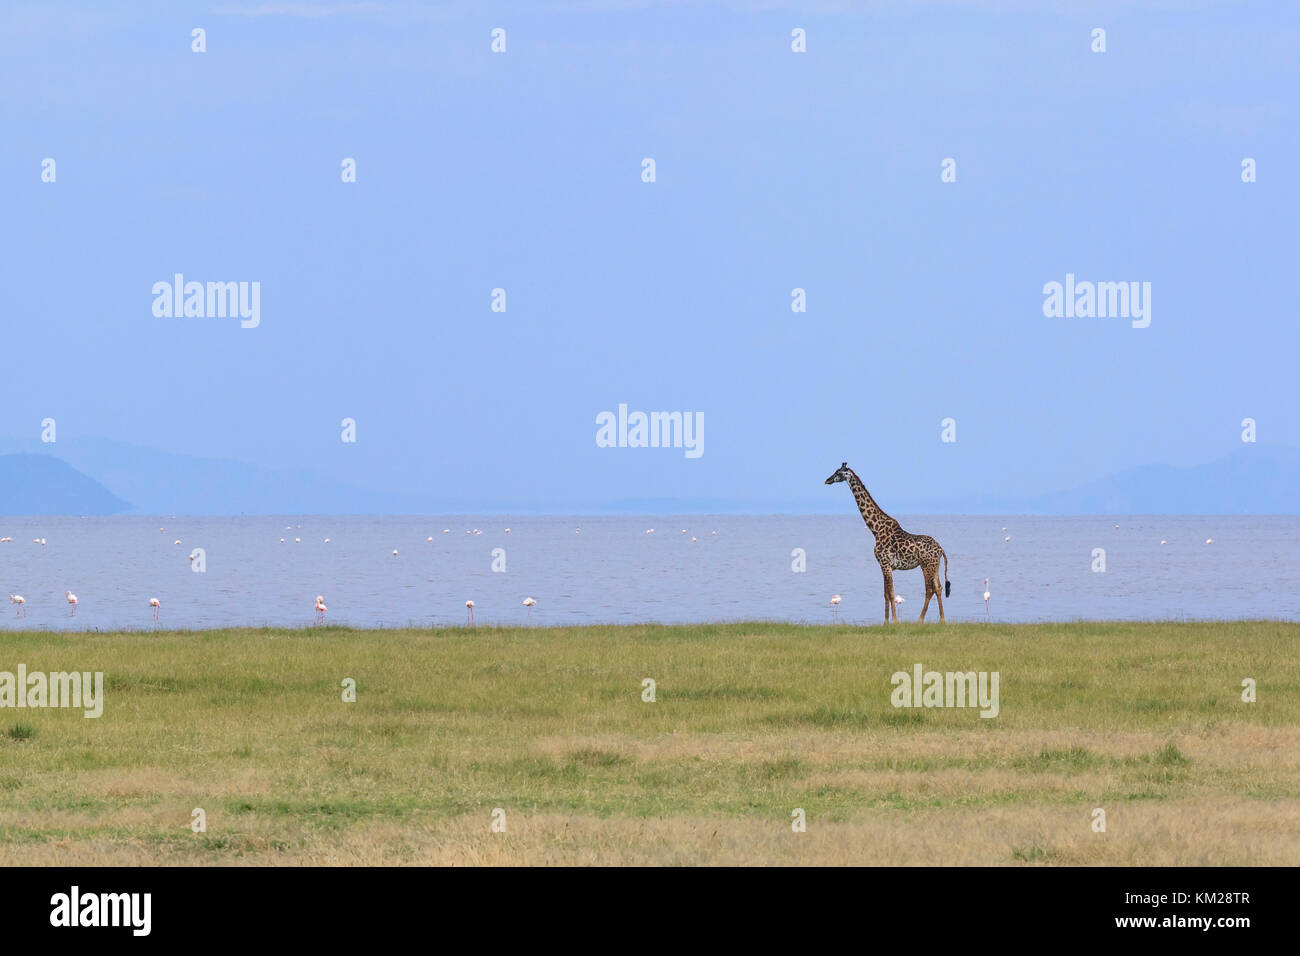 Giraffe and flamingos on the shoreline of Lake Manyara, Tanzania, Africa - Stock Image